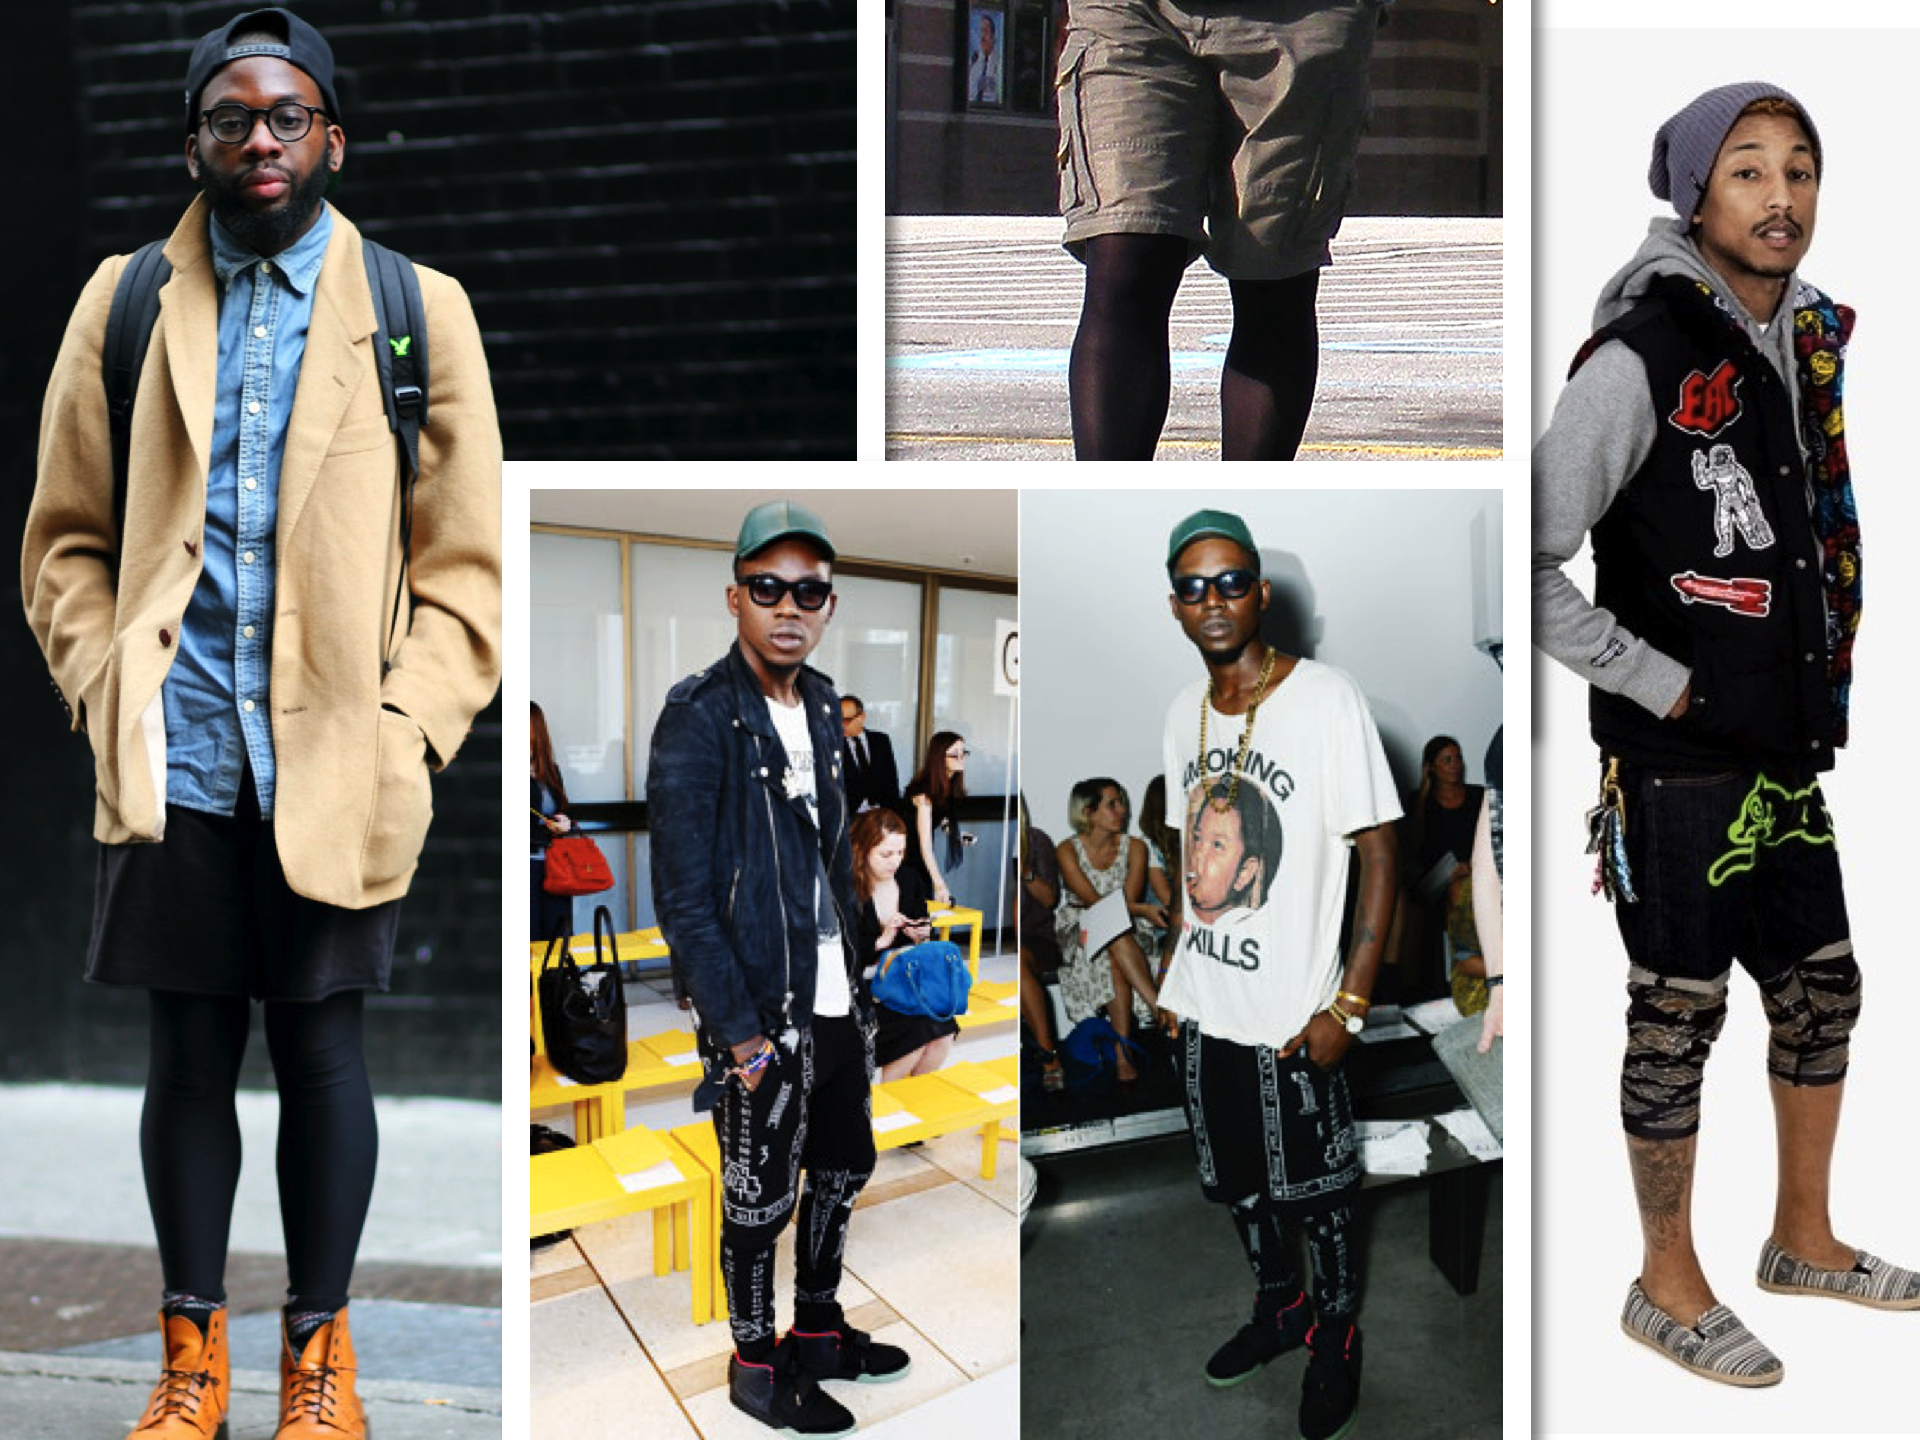 Tights for men fashion